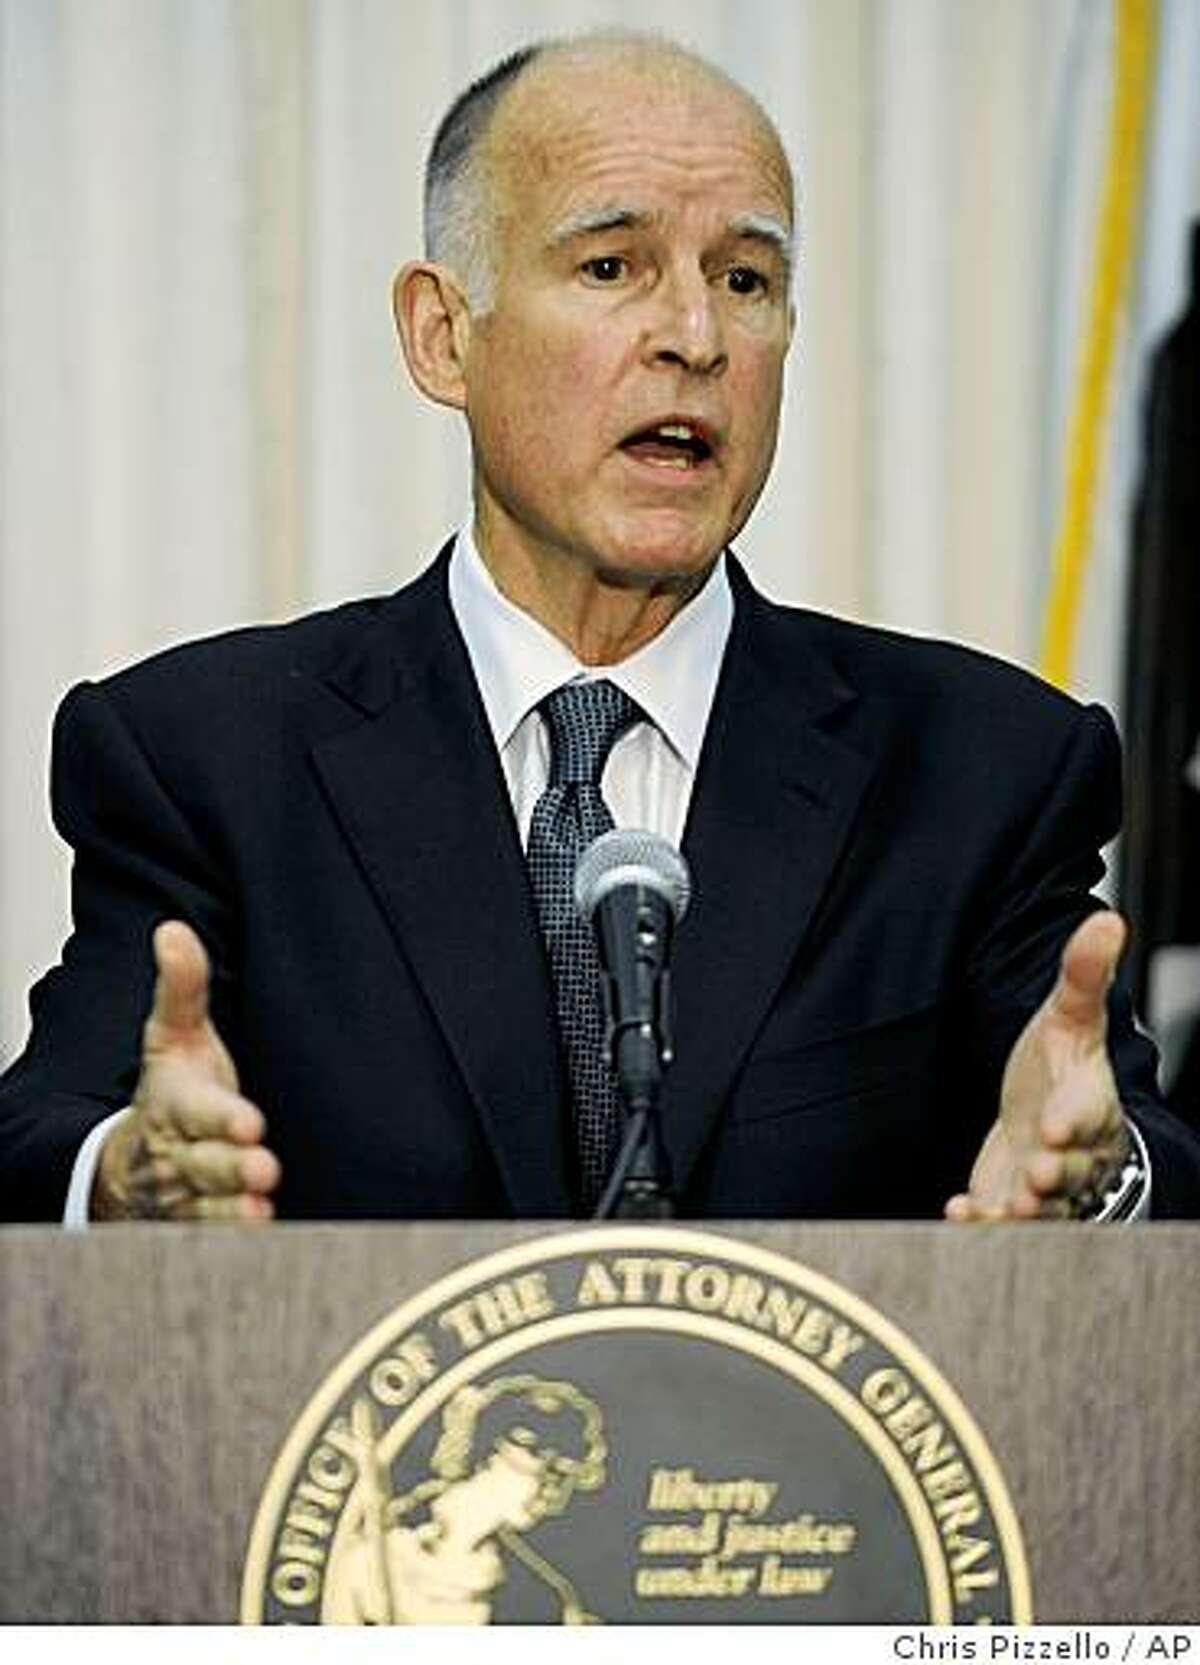 ** CORRECTS DATE TO MARCH 13 ** California Attorney General Jerry Brown discusses charges filed against Howard K. Stern and two physicians for conspiring to illegally furnish controlled substances to Anna Nicole Smith leading up to her 2007 fatal overdose, at a news conference in Los Angeles, Friday, March 13, 2009. (AP Photo/Chris Pizzello)